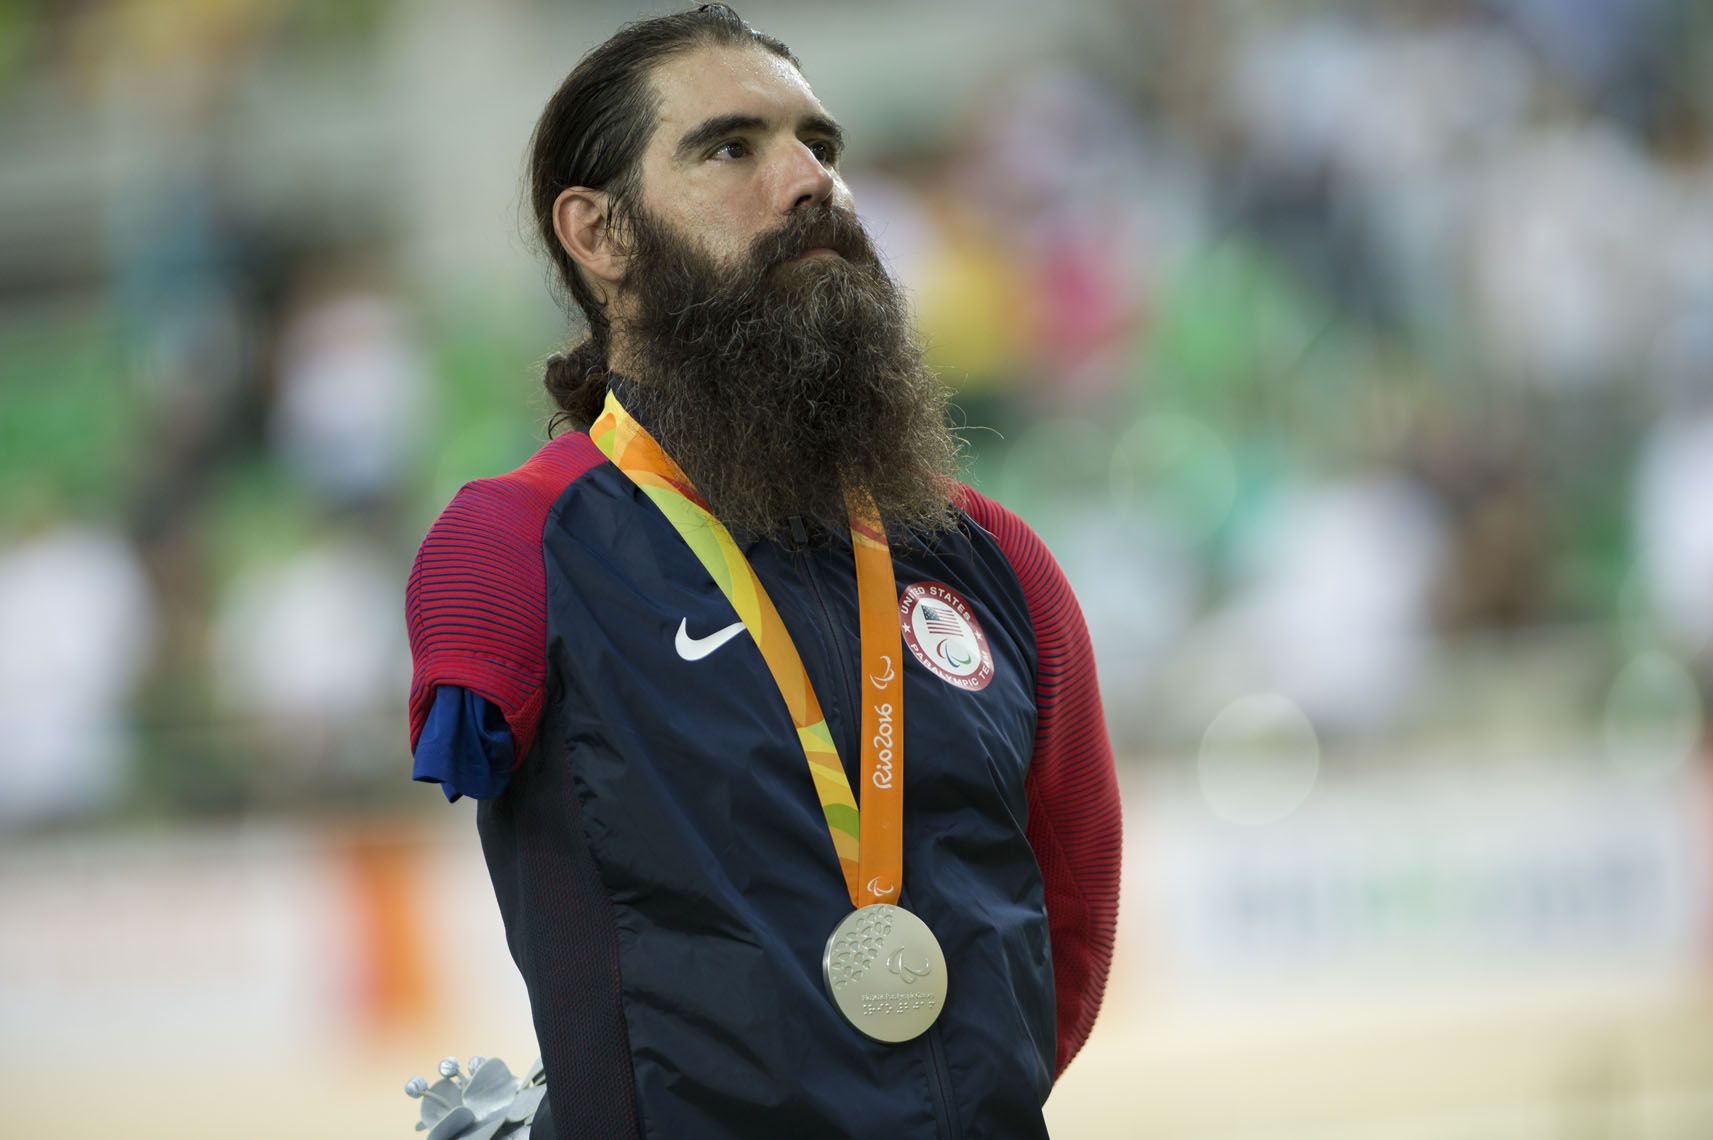 Joe Berenyi, Silver Medalist in the Rio Paralympic Games